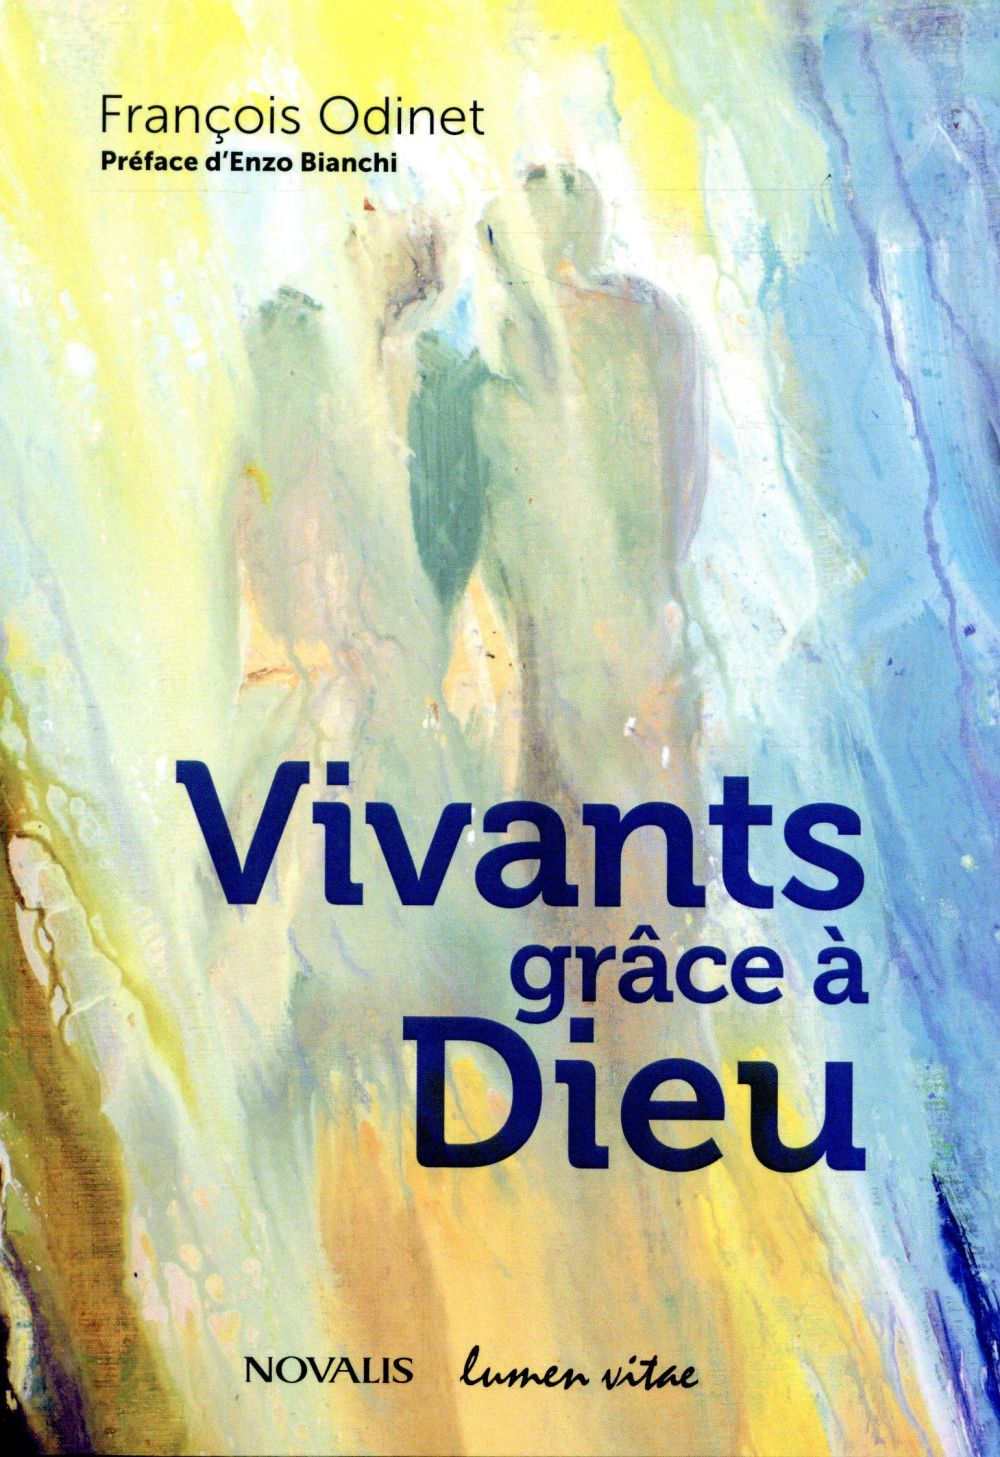 VIVANTS GRACE A DIEU